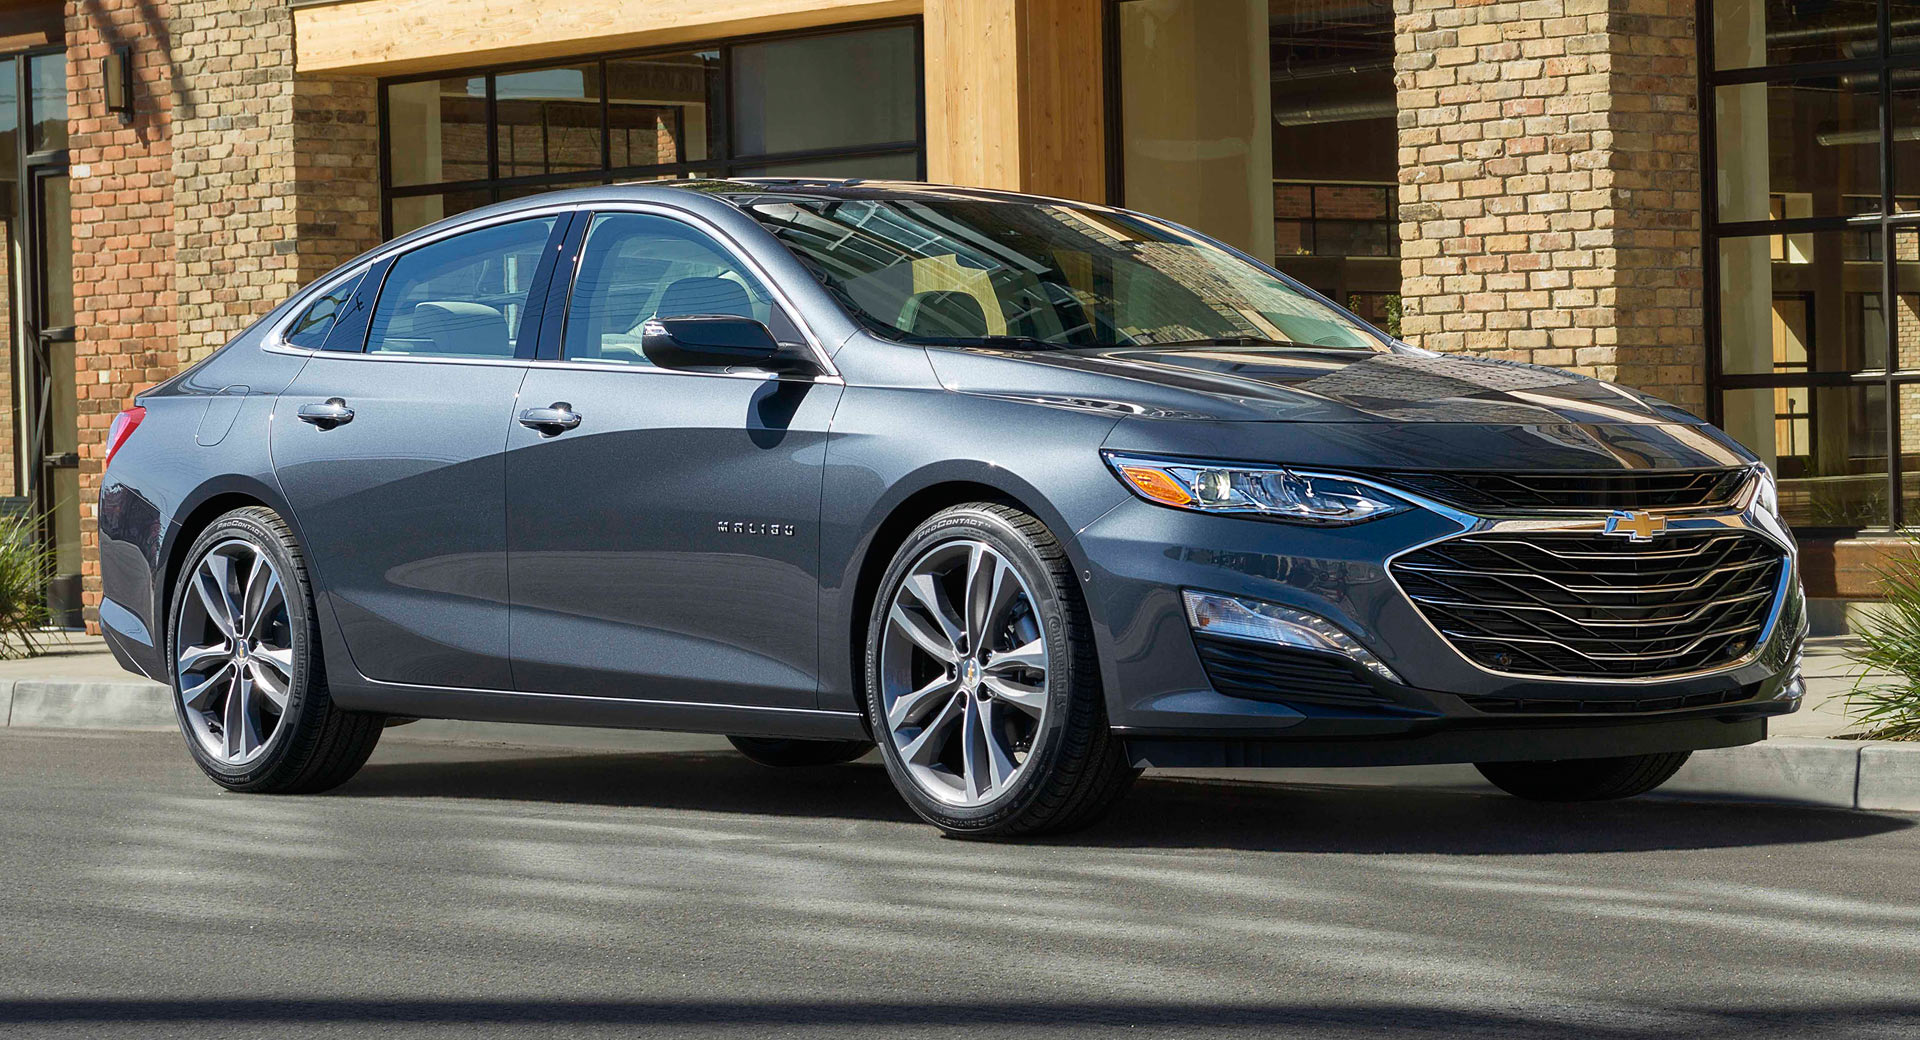 Chevrolet Malibu To Be Dropped After 2023 Carscoops